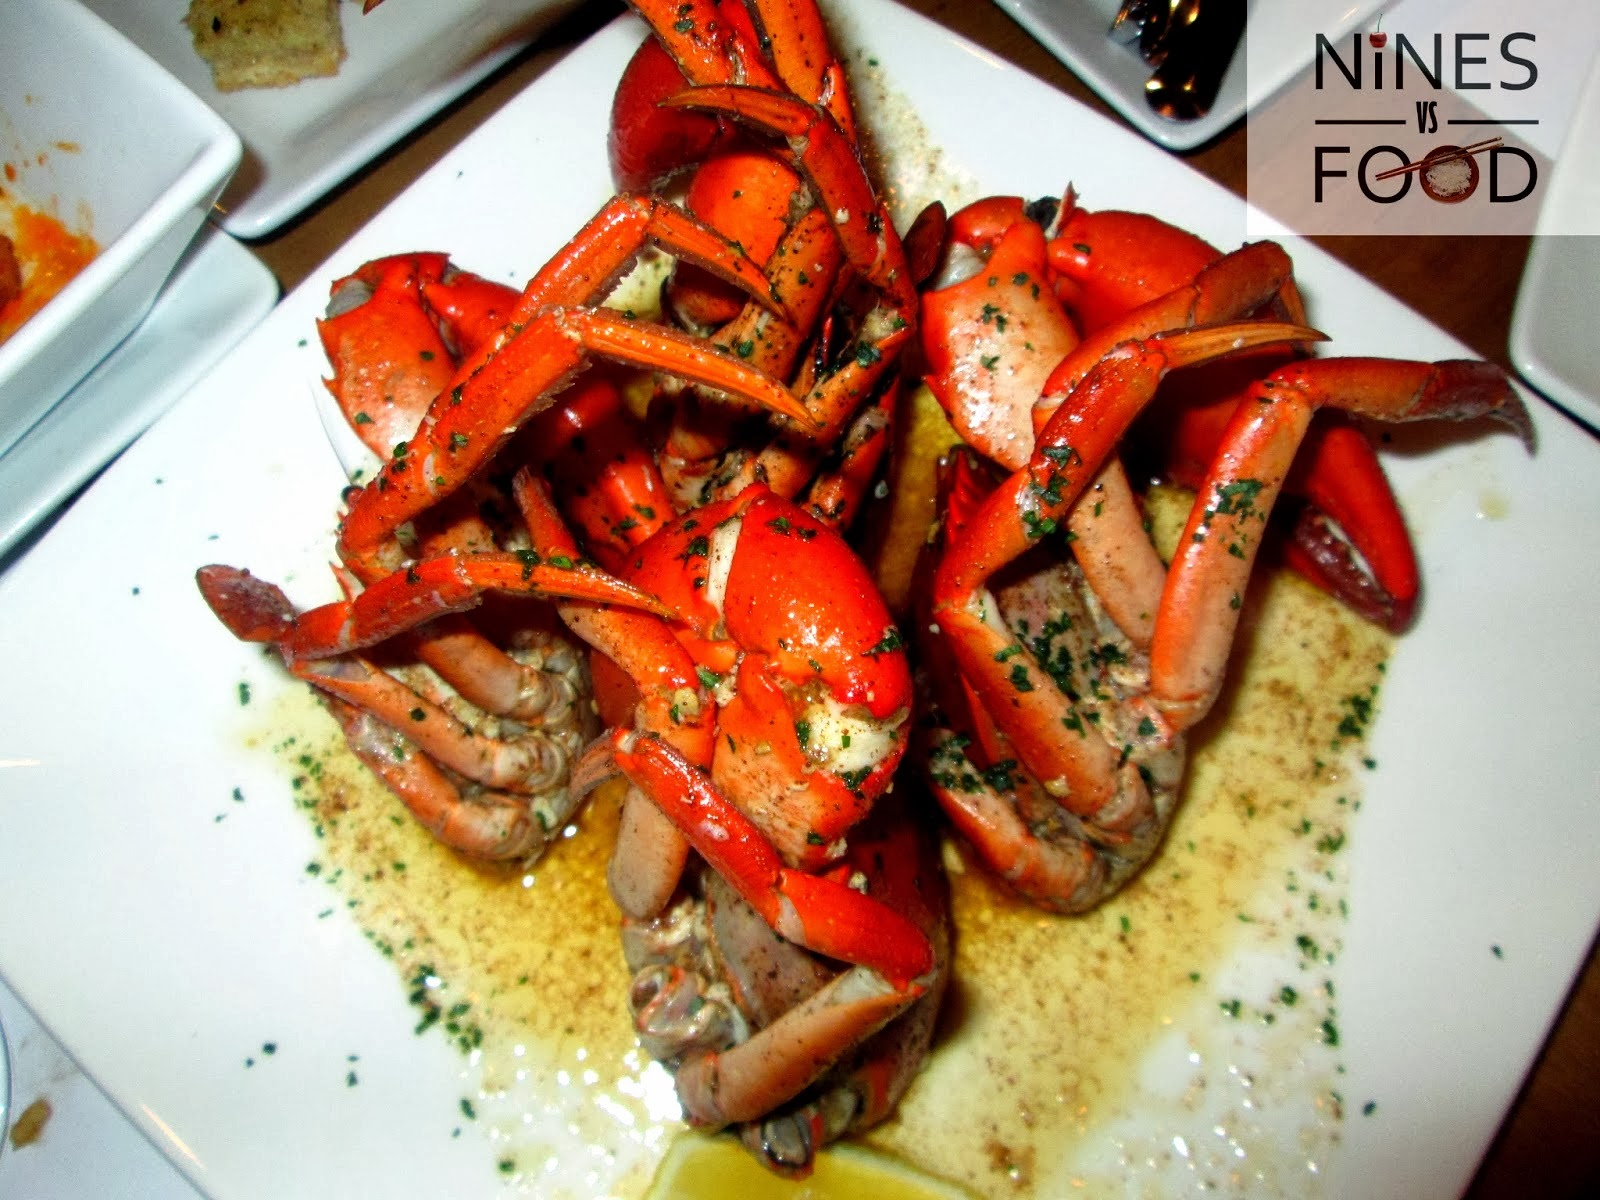 Nines vs. Food - El Cangrejo Crab Seafood and Steak Bistro-14.jpg